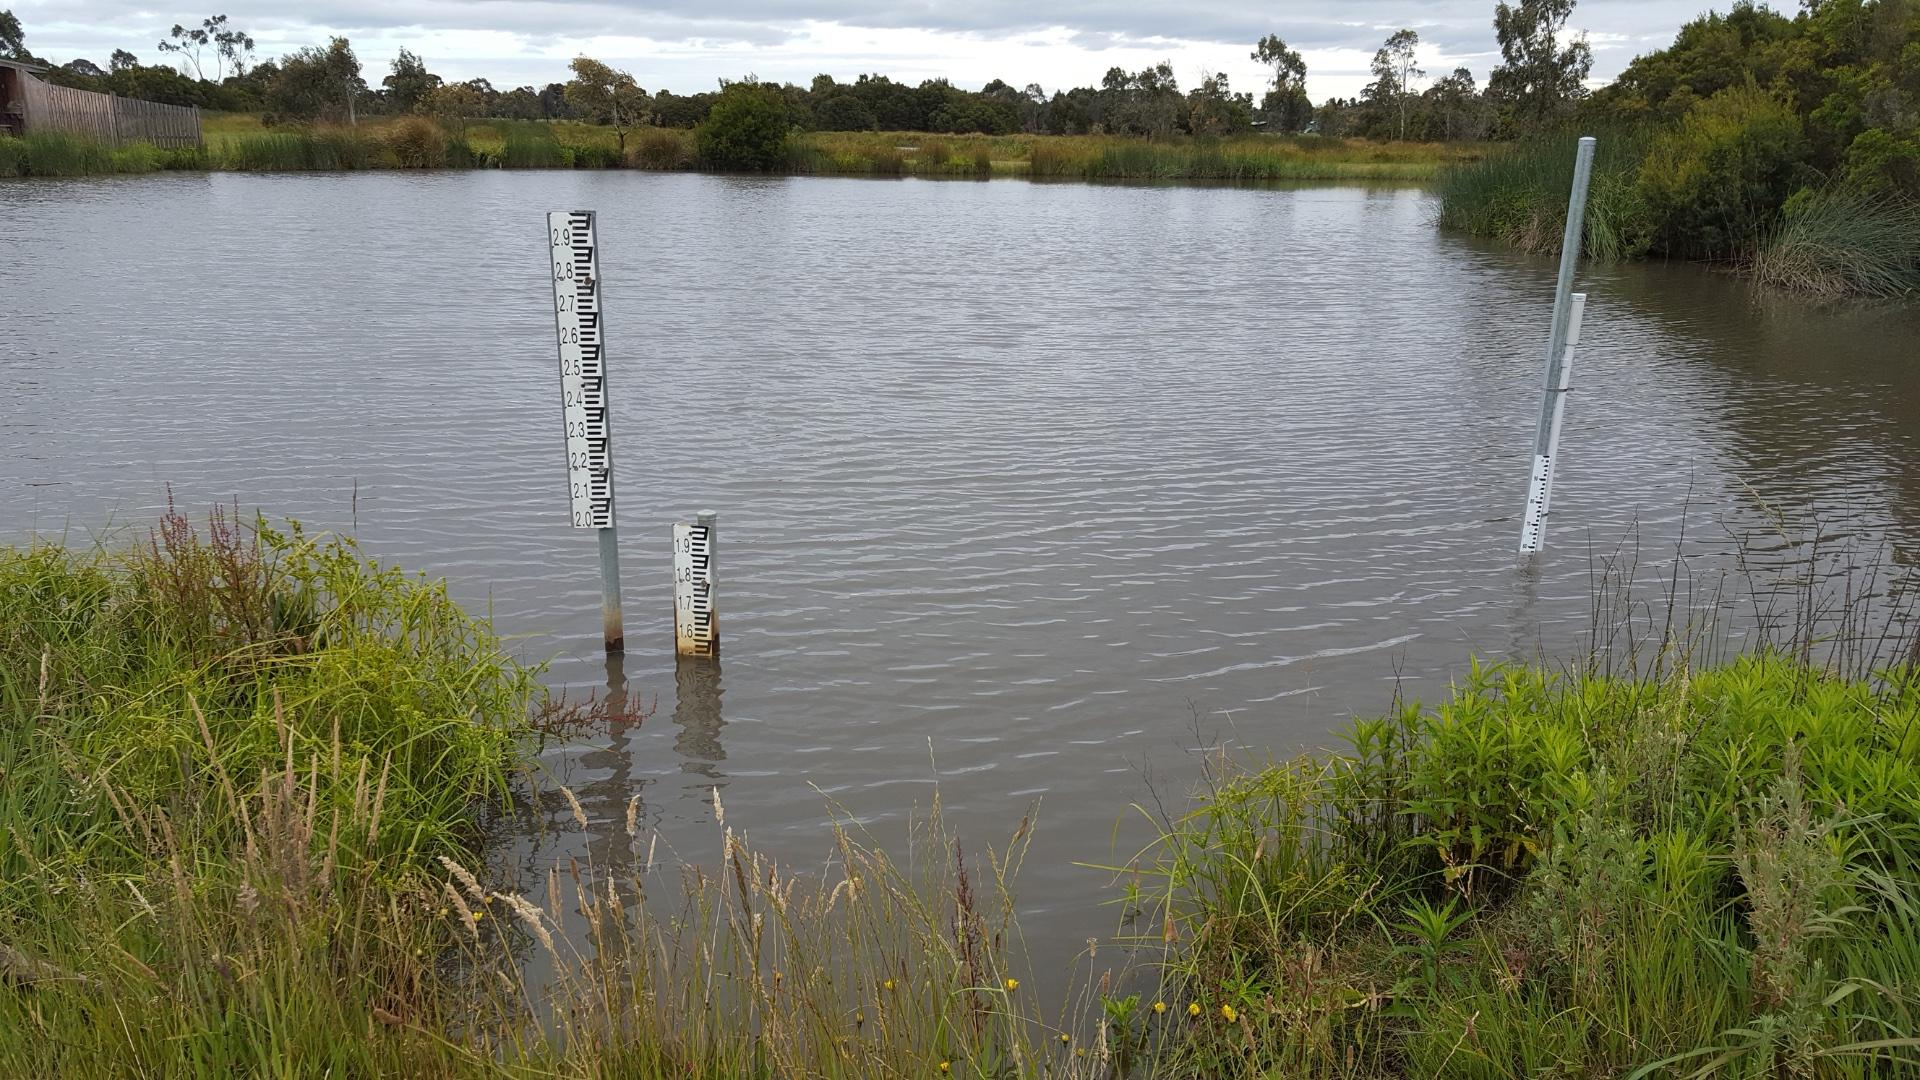 Old and new markers in the wetland